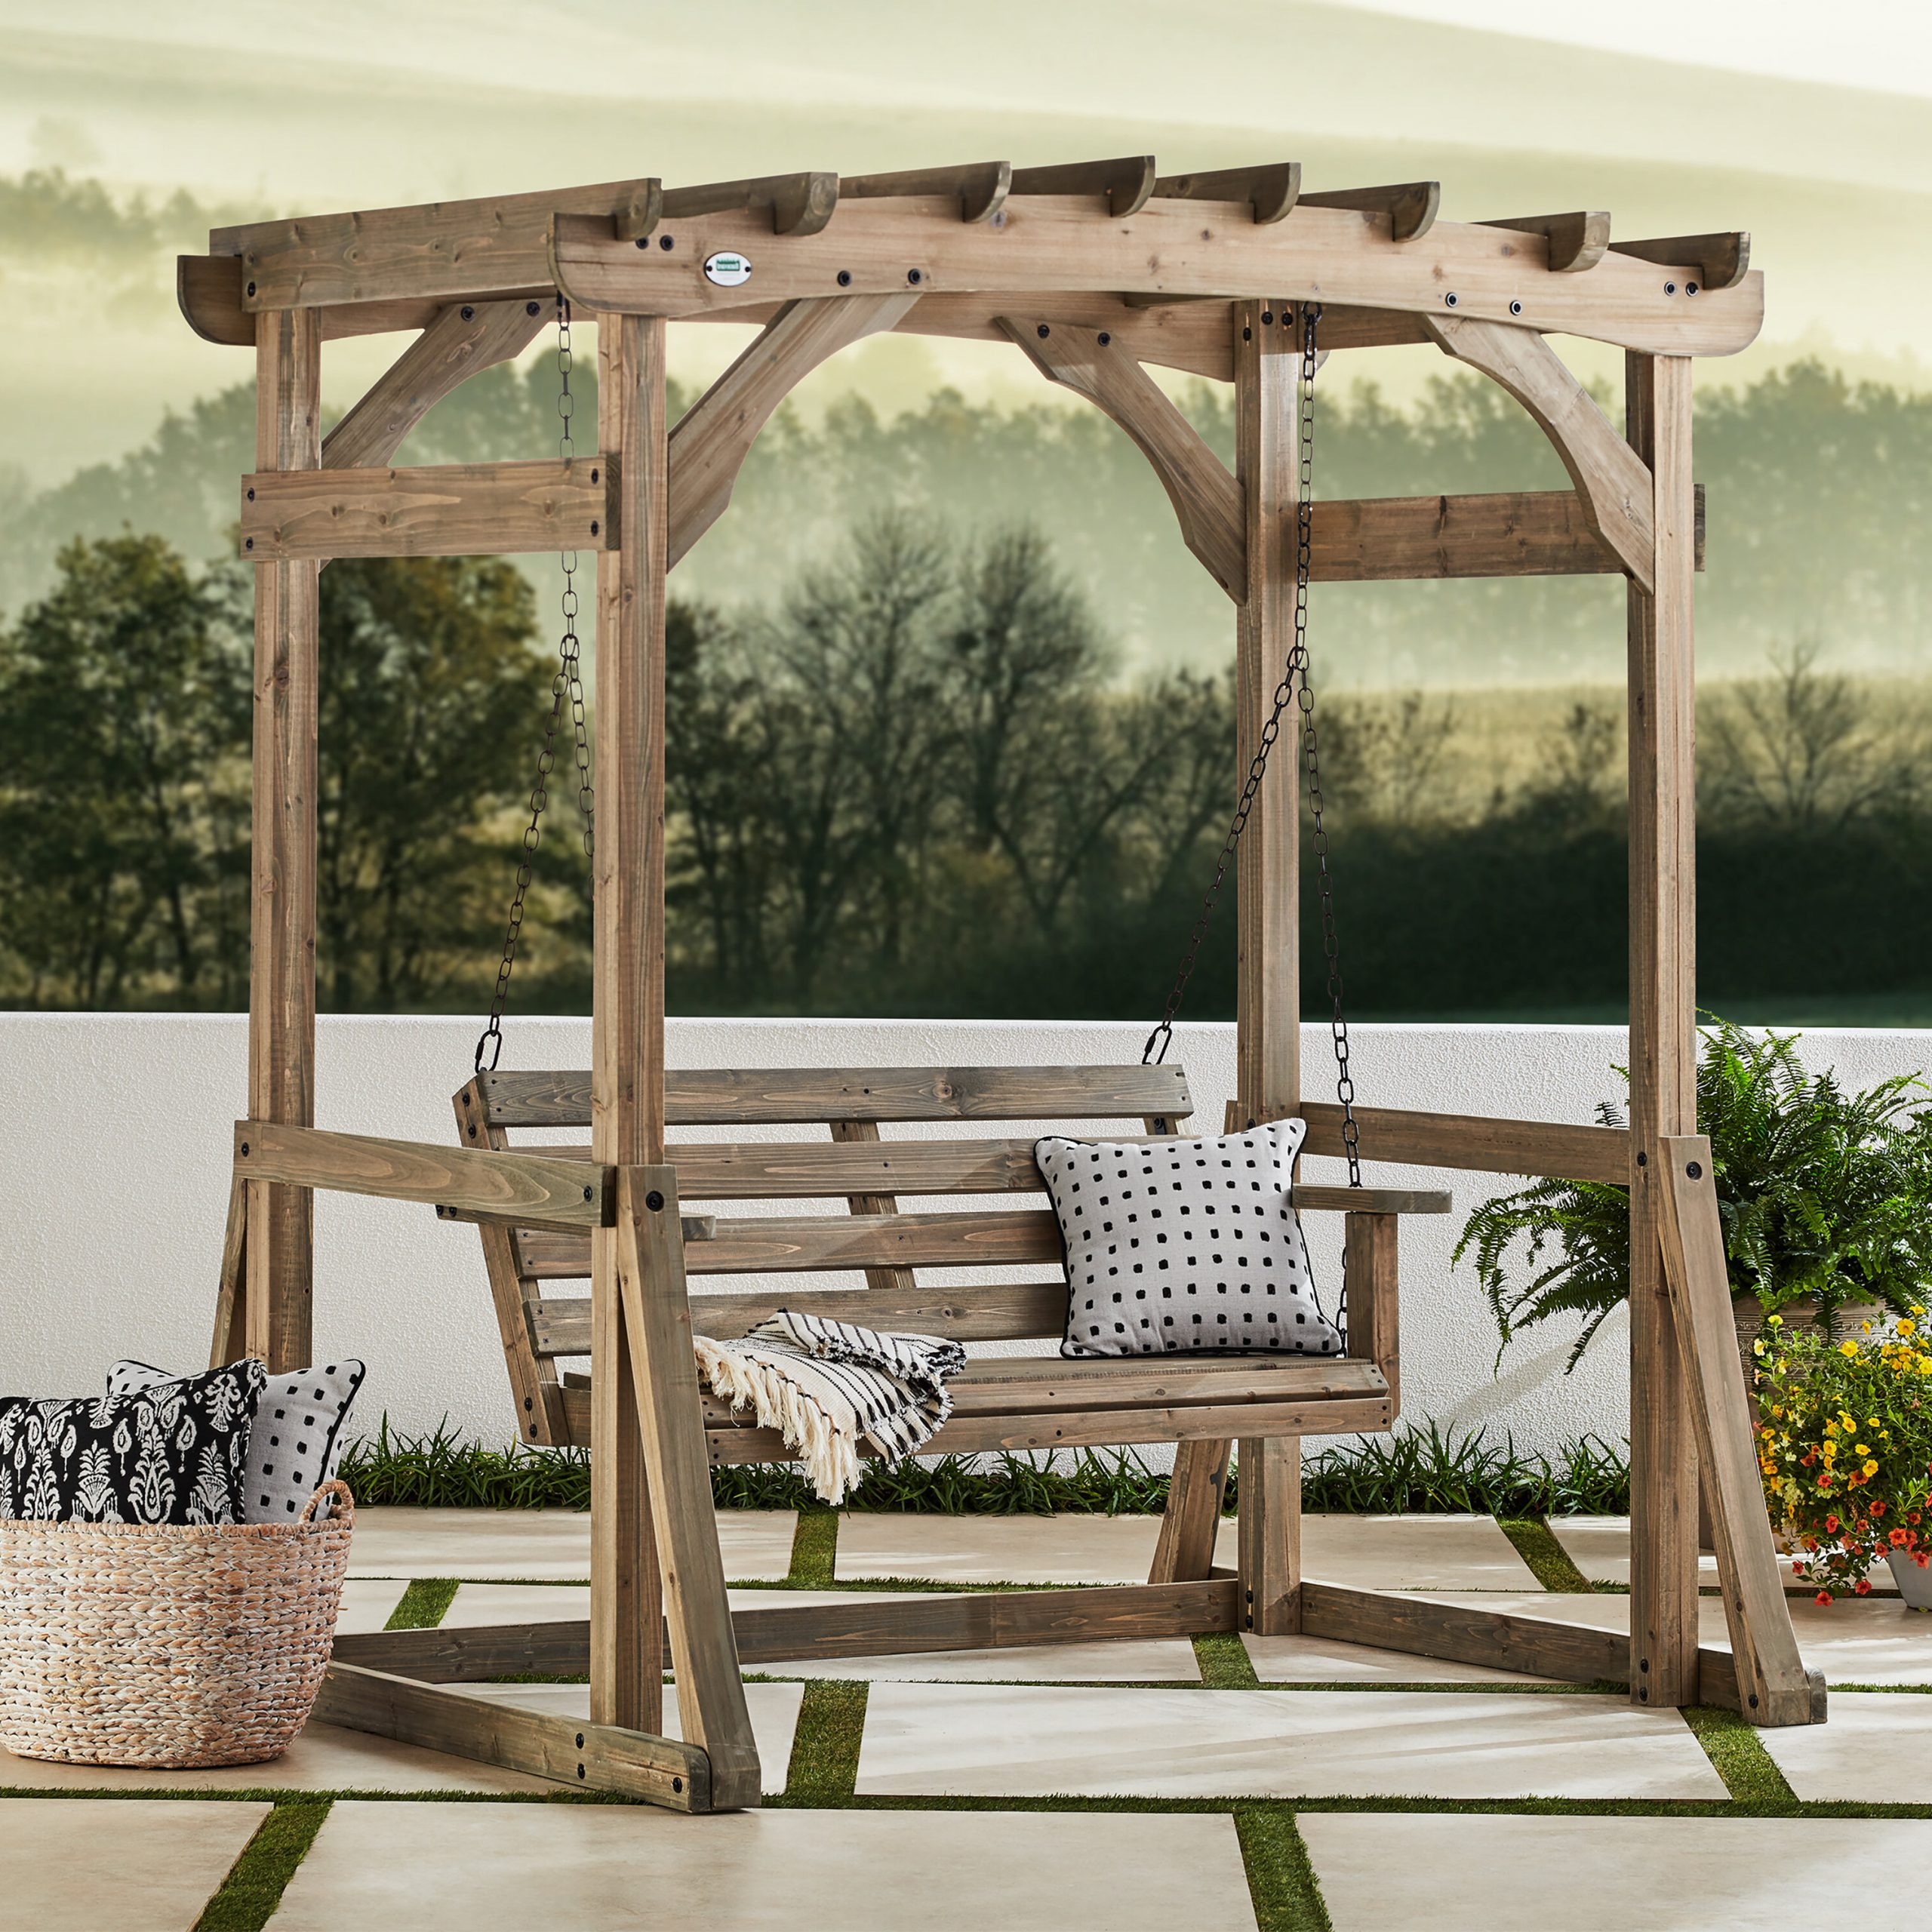 Trendy Odessa Pergola Porch Swing With Stand Within Pergola Porch Swings With Stand (View 10 of 30)